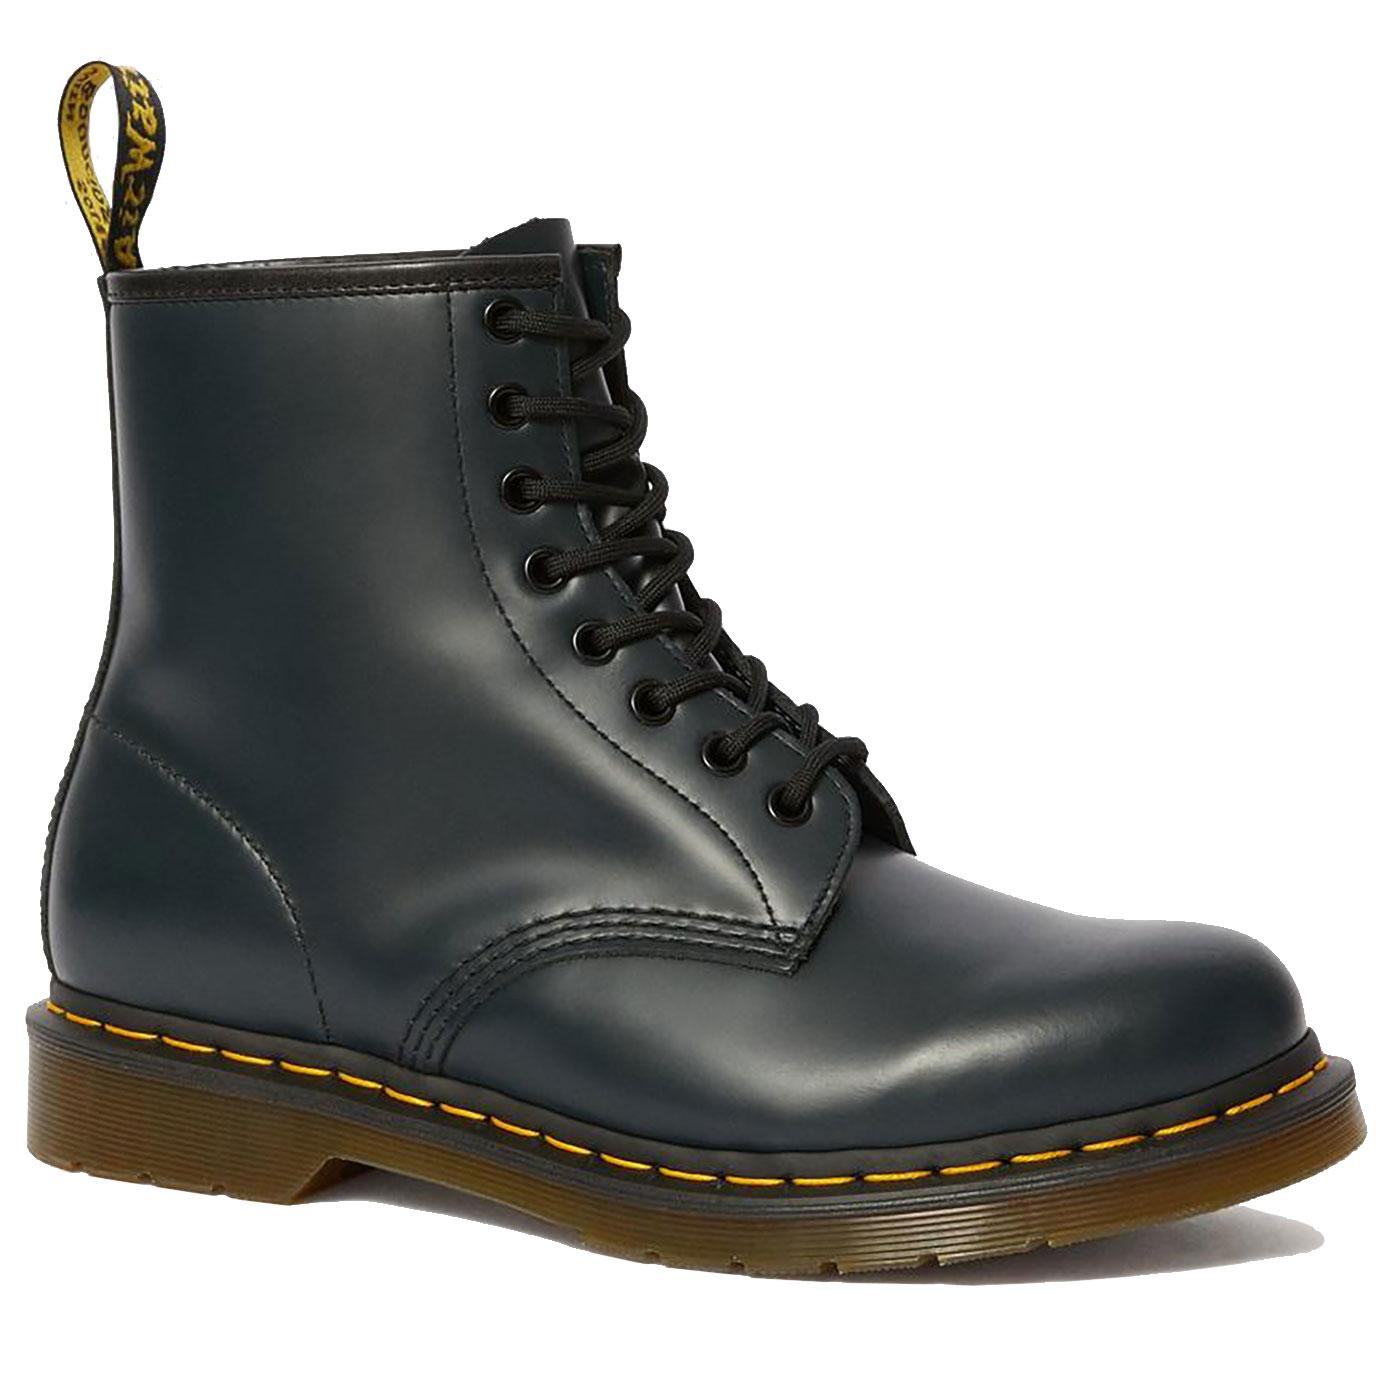 1460 Smooth DR MARTENS Womens Classic Boots NAVY